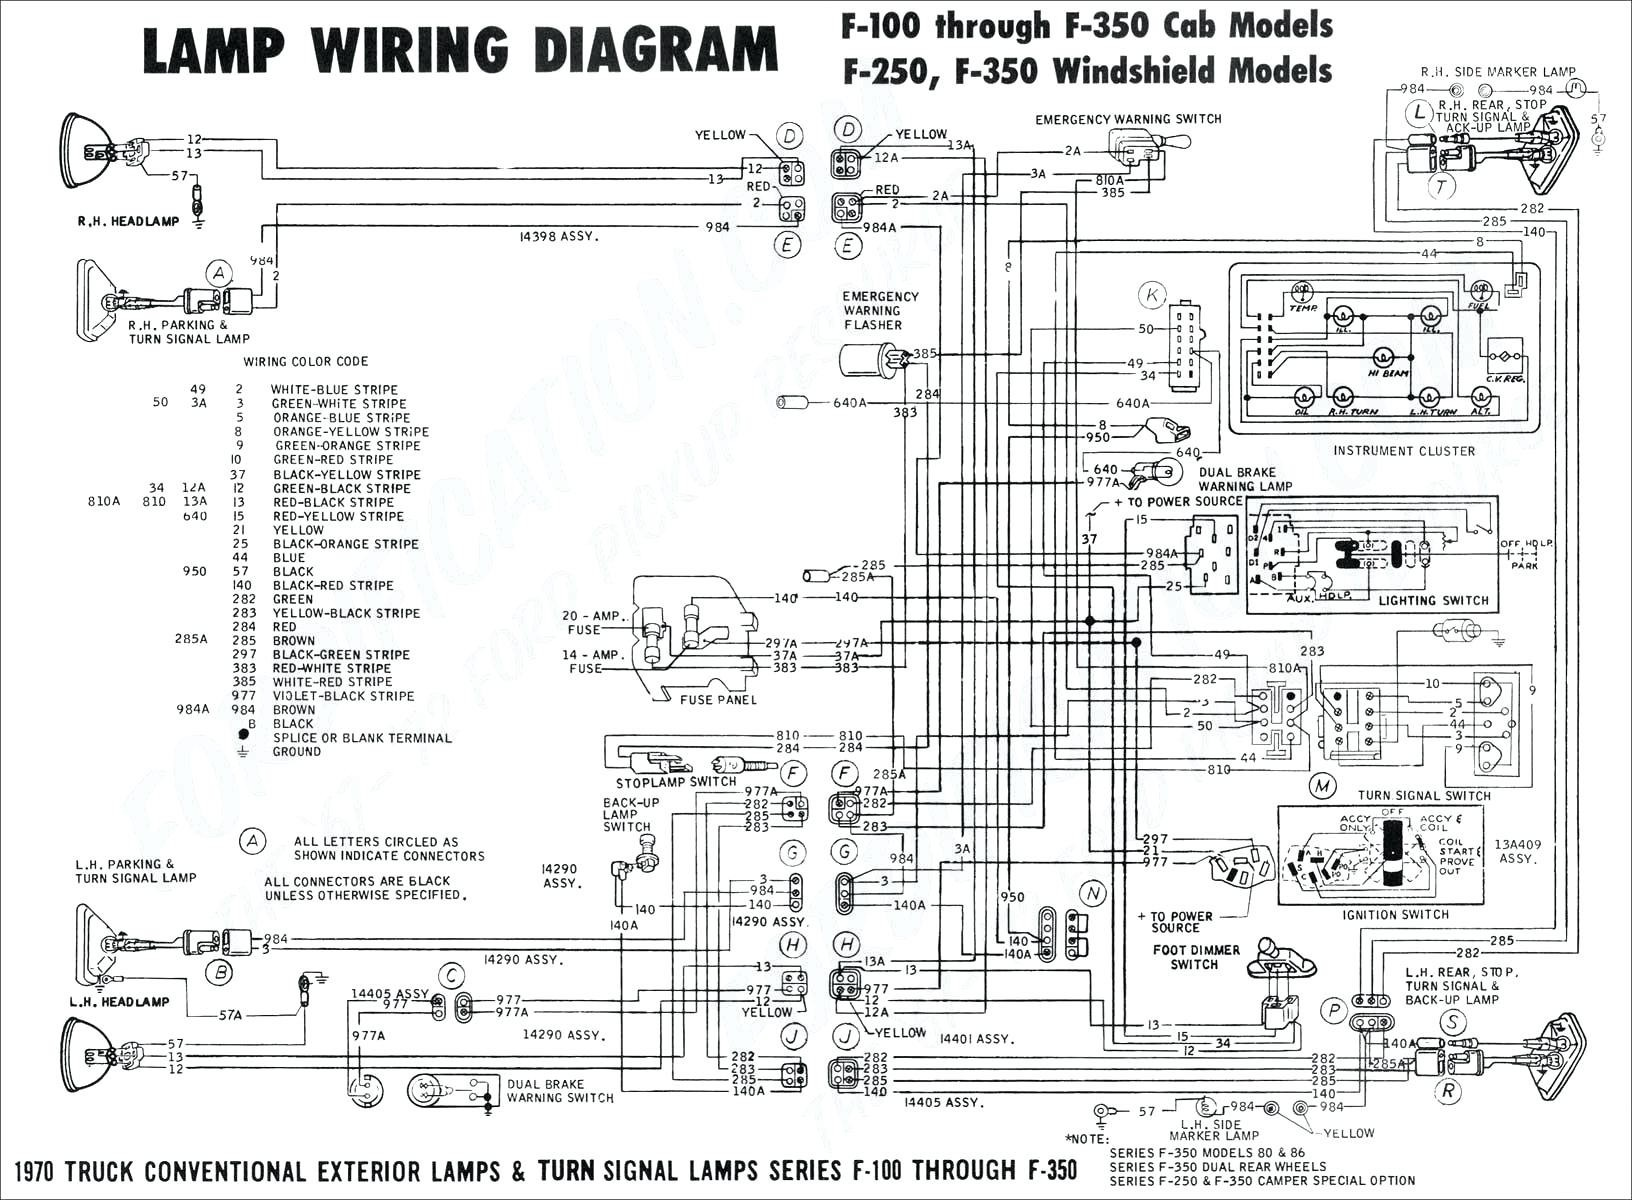 1991 ford F150 Engine Diagram 1991 ford F 150 Tail Light Wiring Diagram Trusted Wiring Diagrams • Of 1991 ford F150 Engine Diagram Light Wiring Diagram for 1995 F150 Trusted Wiring Diagrams •